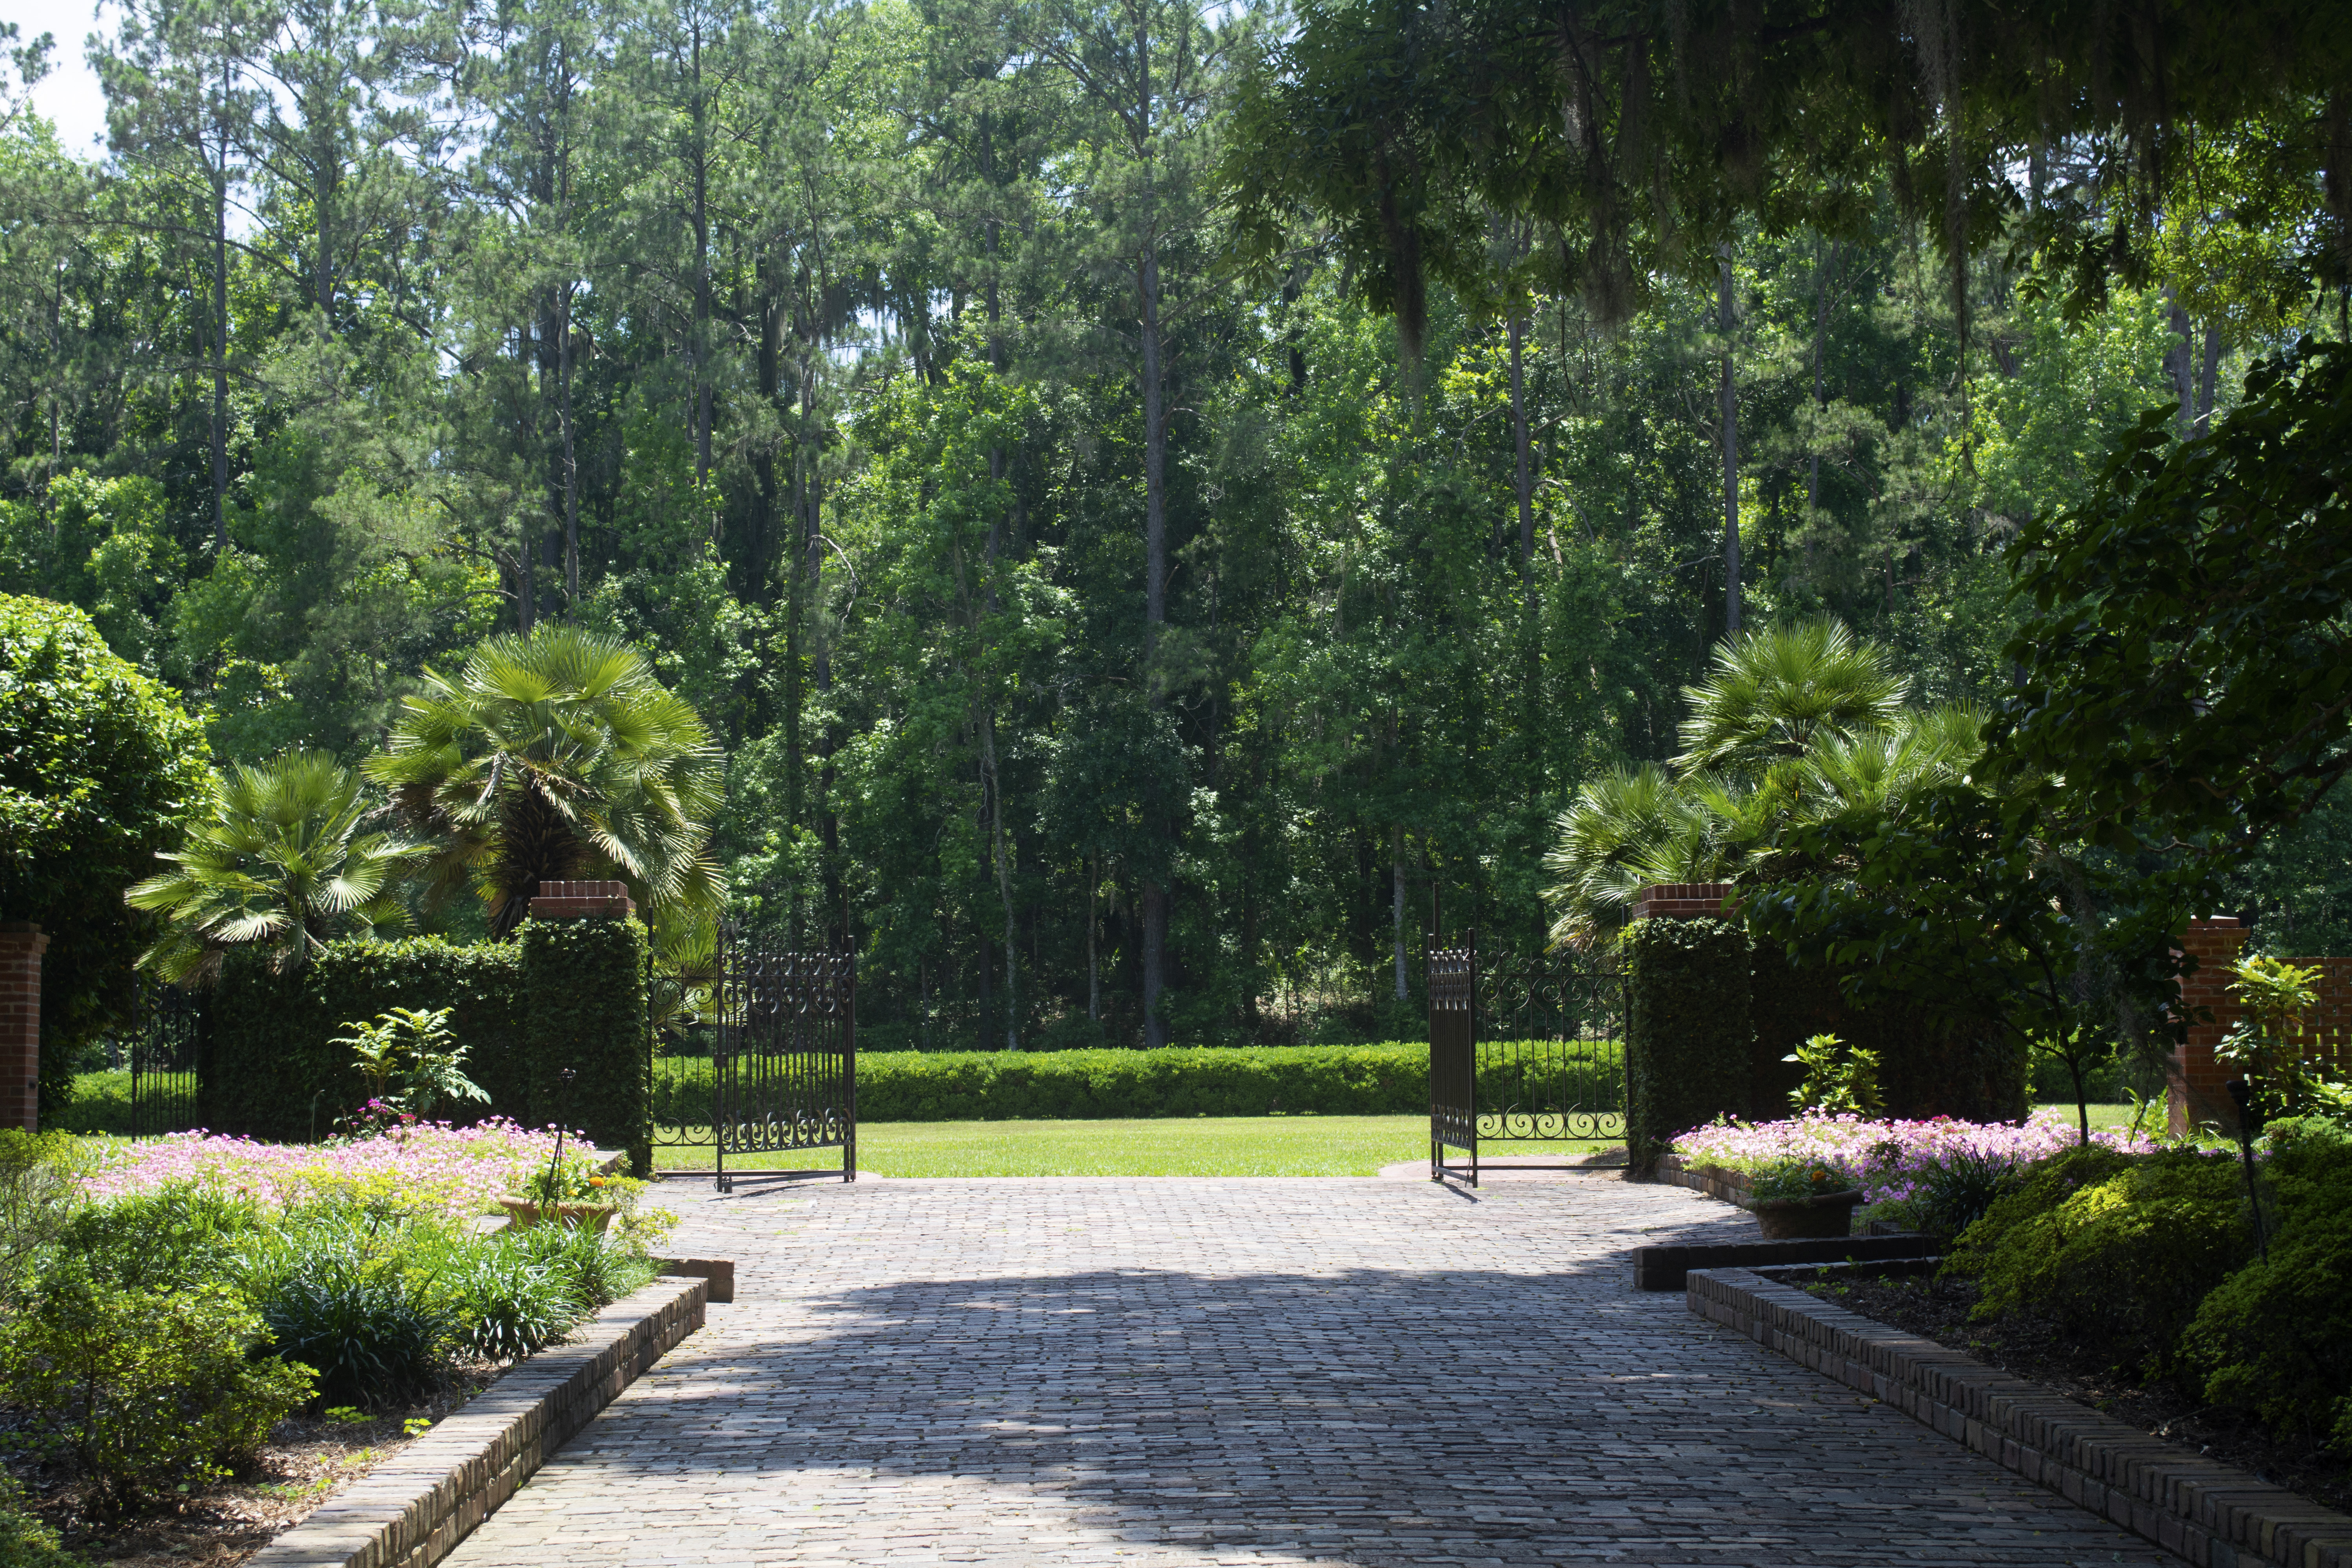 Walkway at Alfred B. McCabe Garden State Park in Tallahassee, FL